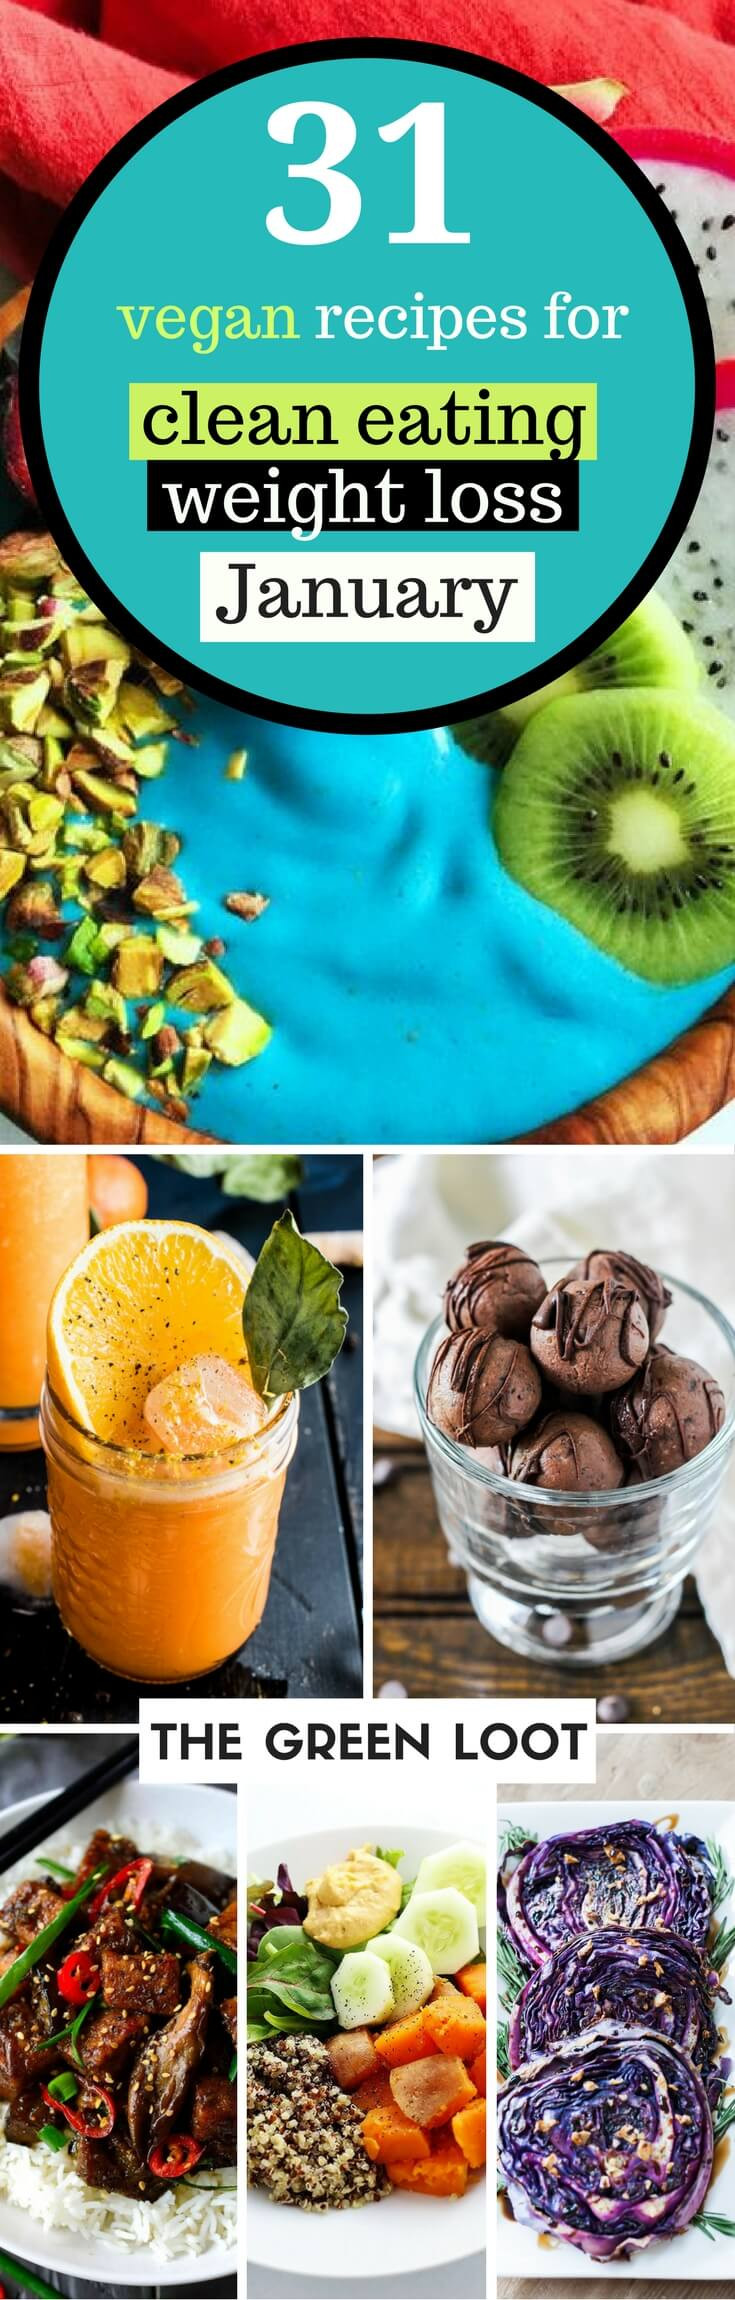 Healthy Vegan Breakfast For Weight Loss  31 Vegan Clean Eating Weight Loss Recipes for January